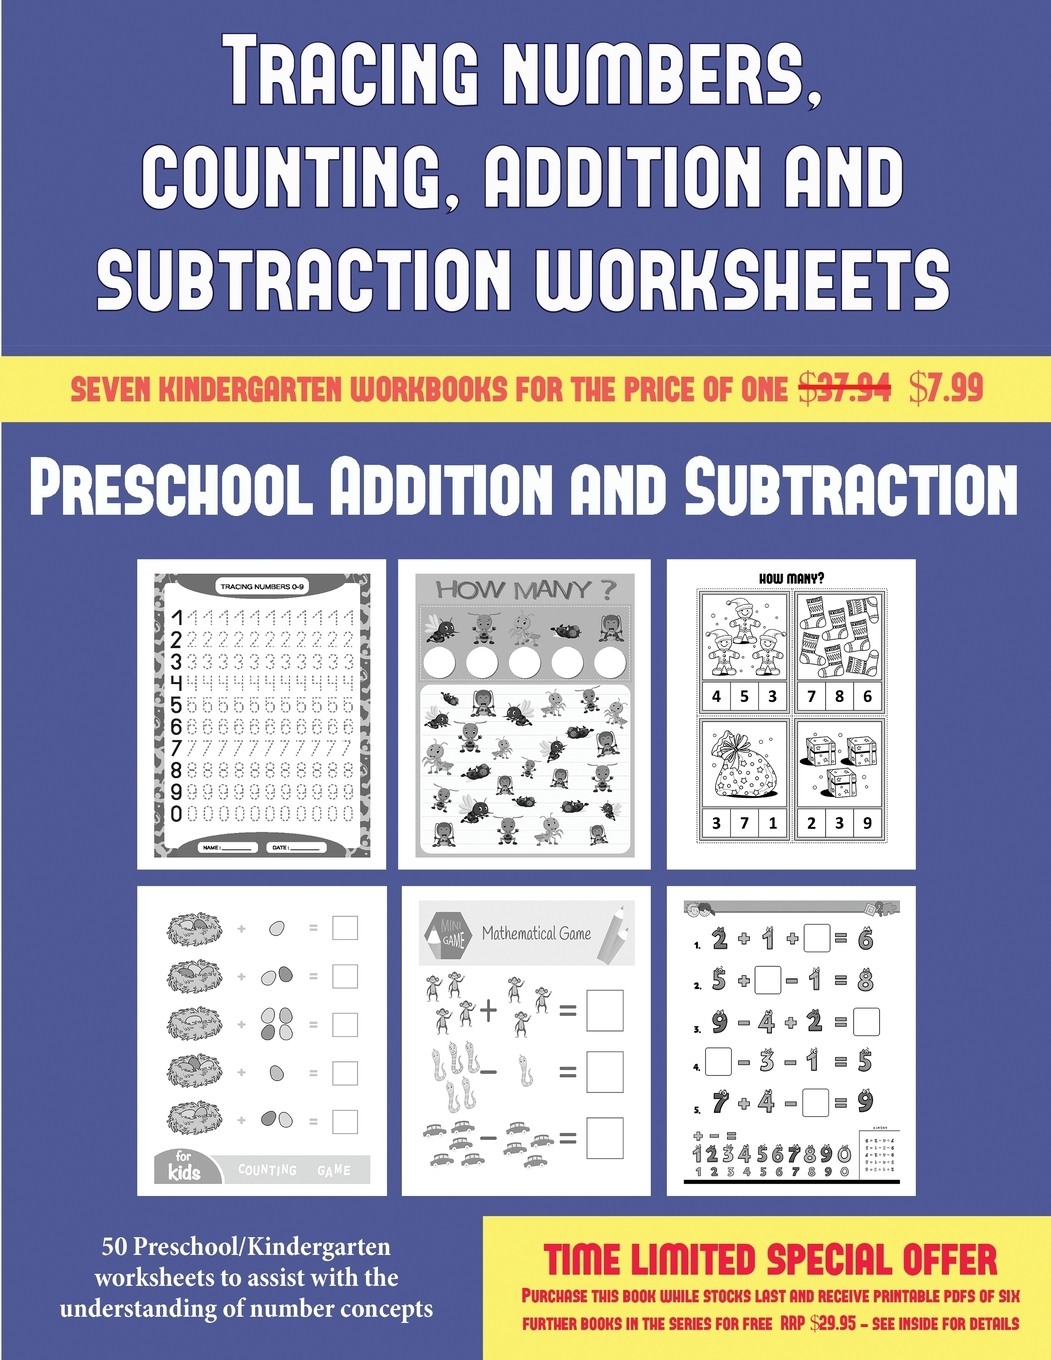 Preschool Addition And Subtraction Preschool Addition And